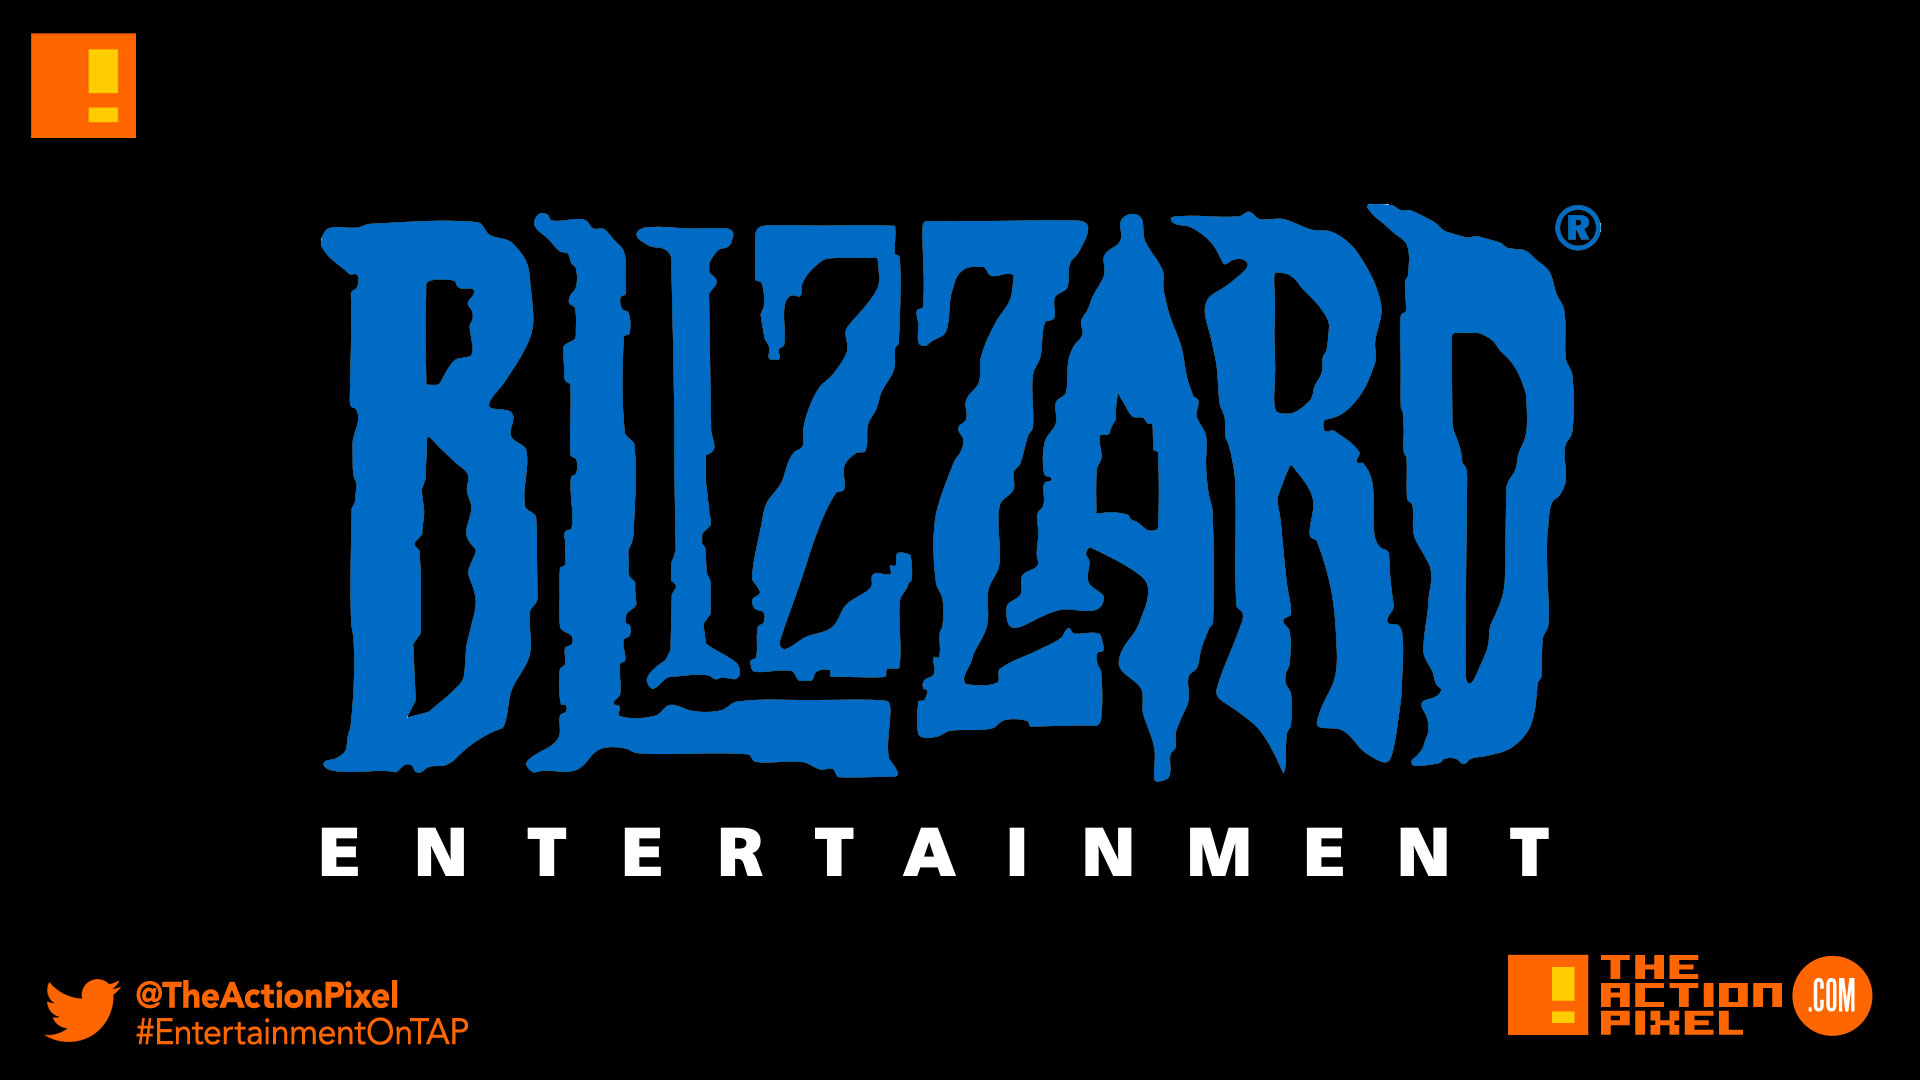 blizzard entertainment, blizzard,the action pixel, arena, entertainment on tap